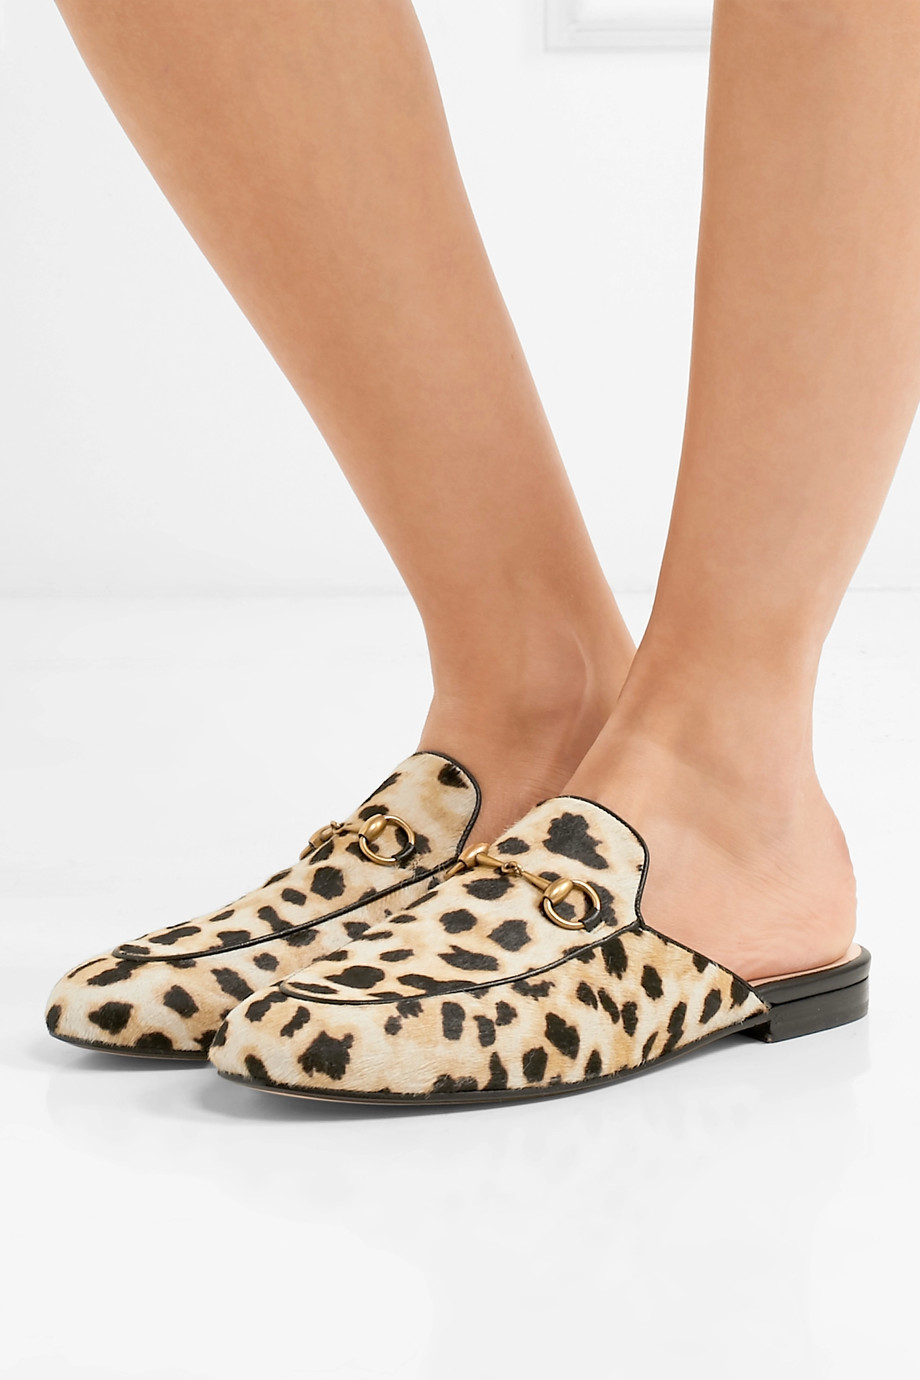 c135c298f gucci-princetown-loafer-mule-leopard-print-calf-hair - Katie Considers